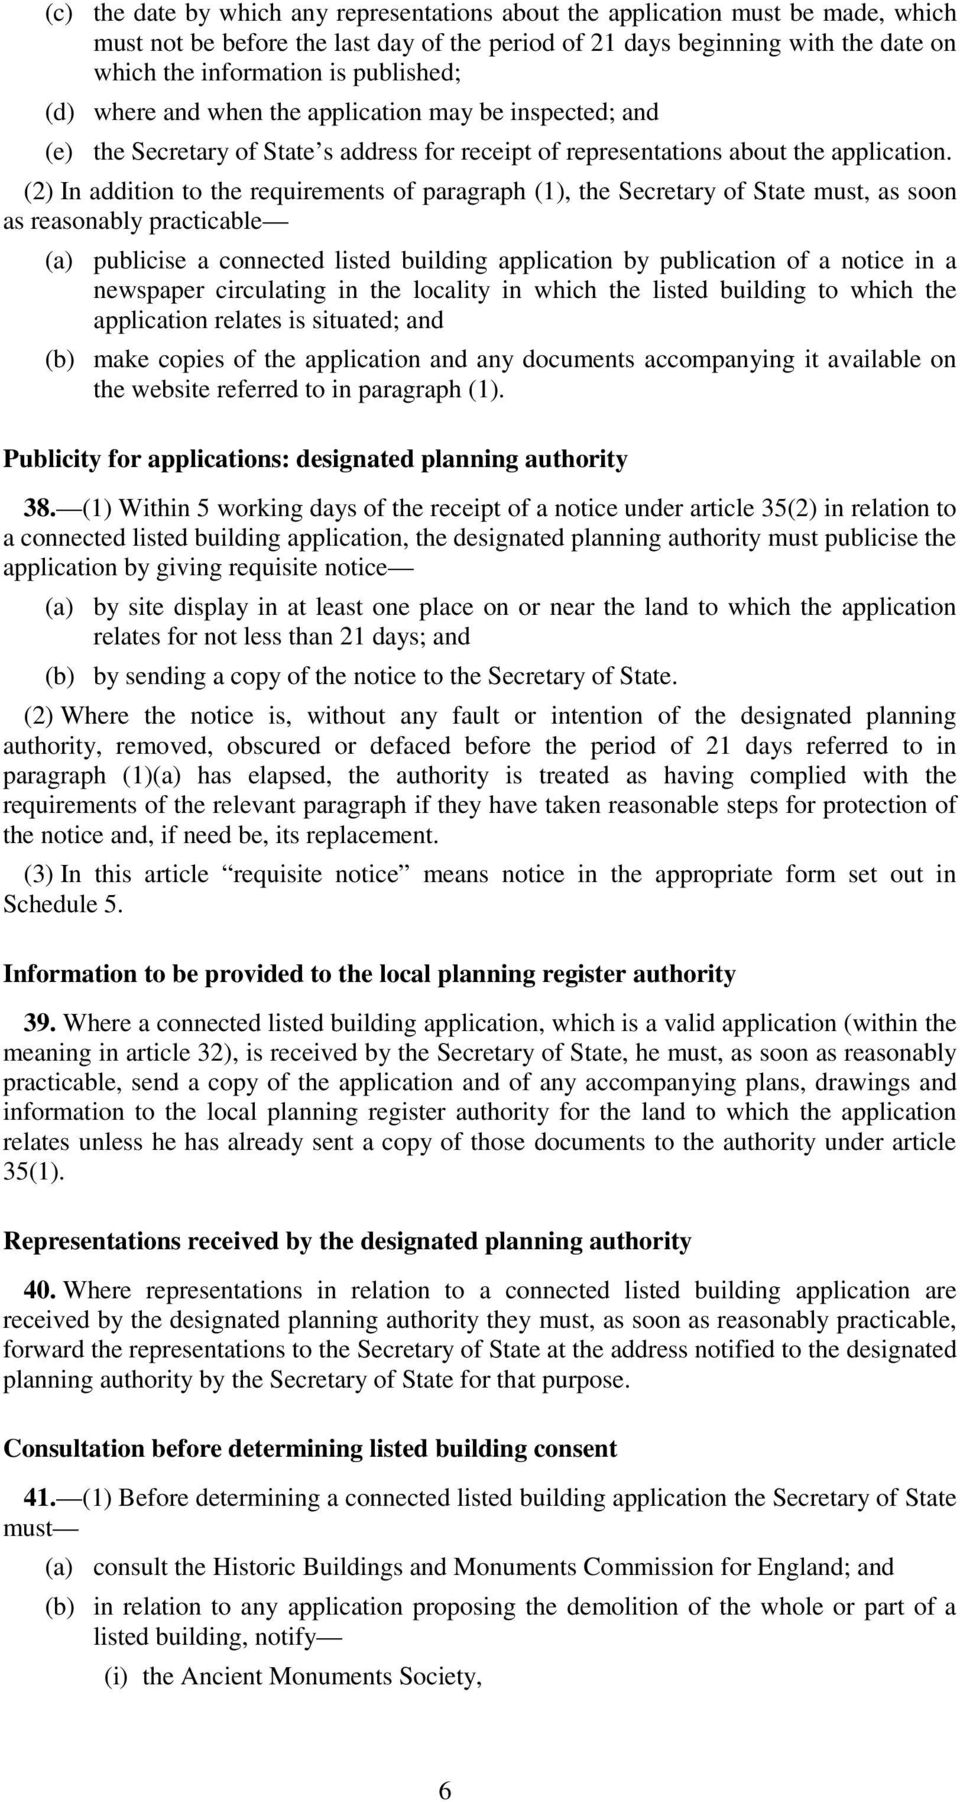 (2) In addition to the requirements of paragraph (1), the Secretary of State must, as soon as reasonably practicable (a) publicise a connected listed building application by publication of a notice